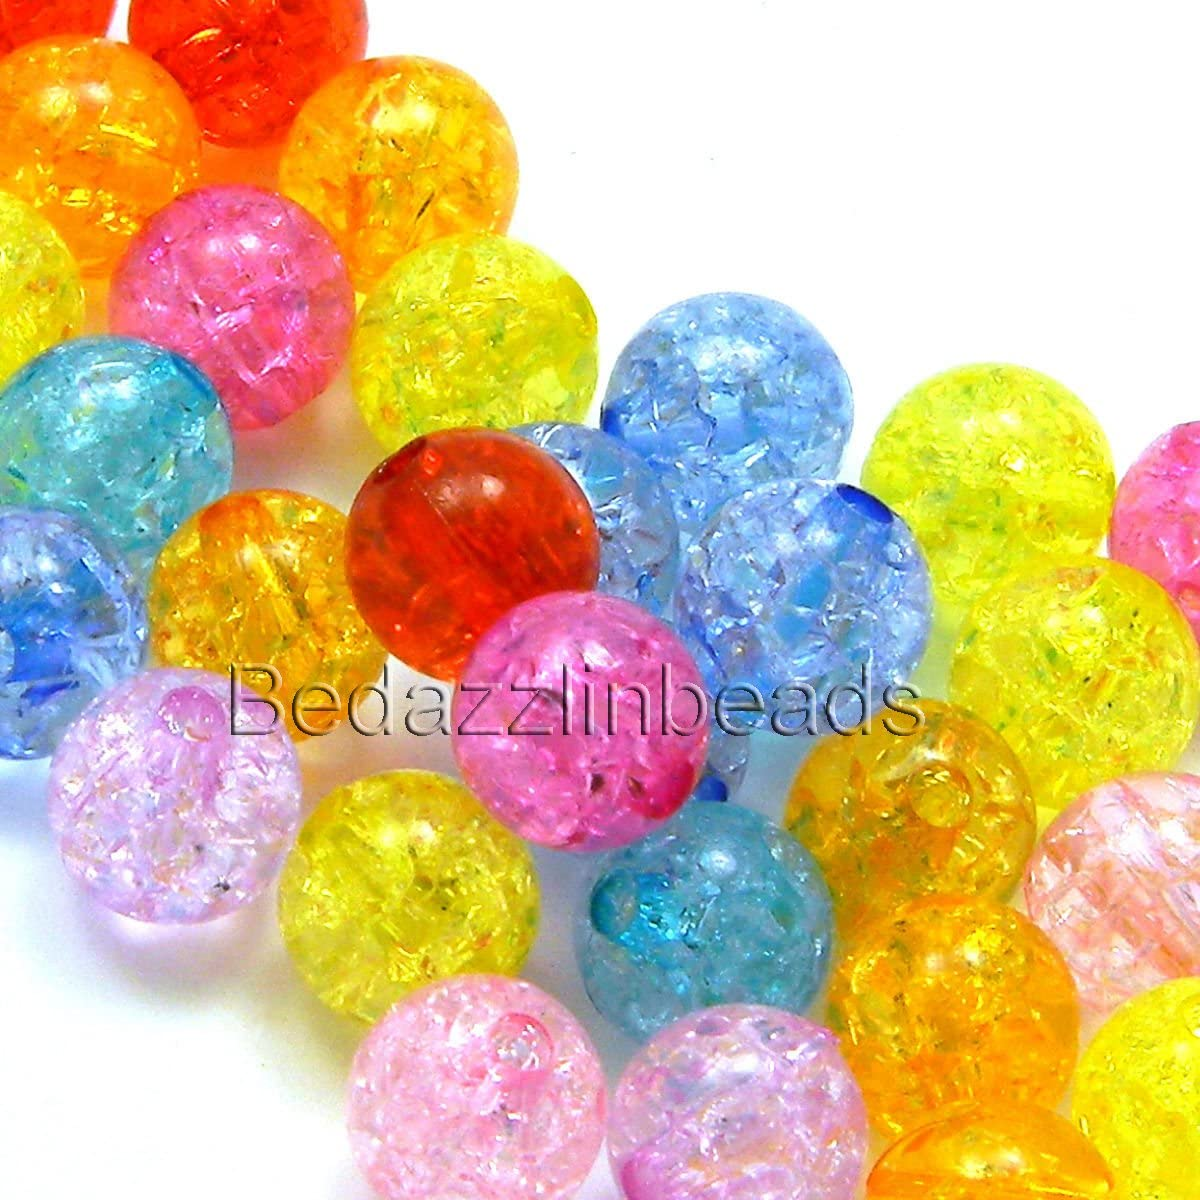 Rig Beads Plaice Beads Sakuma 8mm Plastic Beads in Packets of 100 All Colours